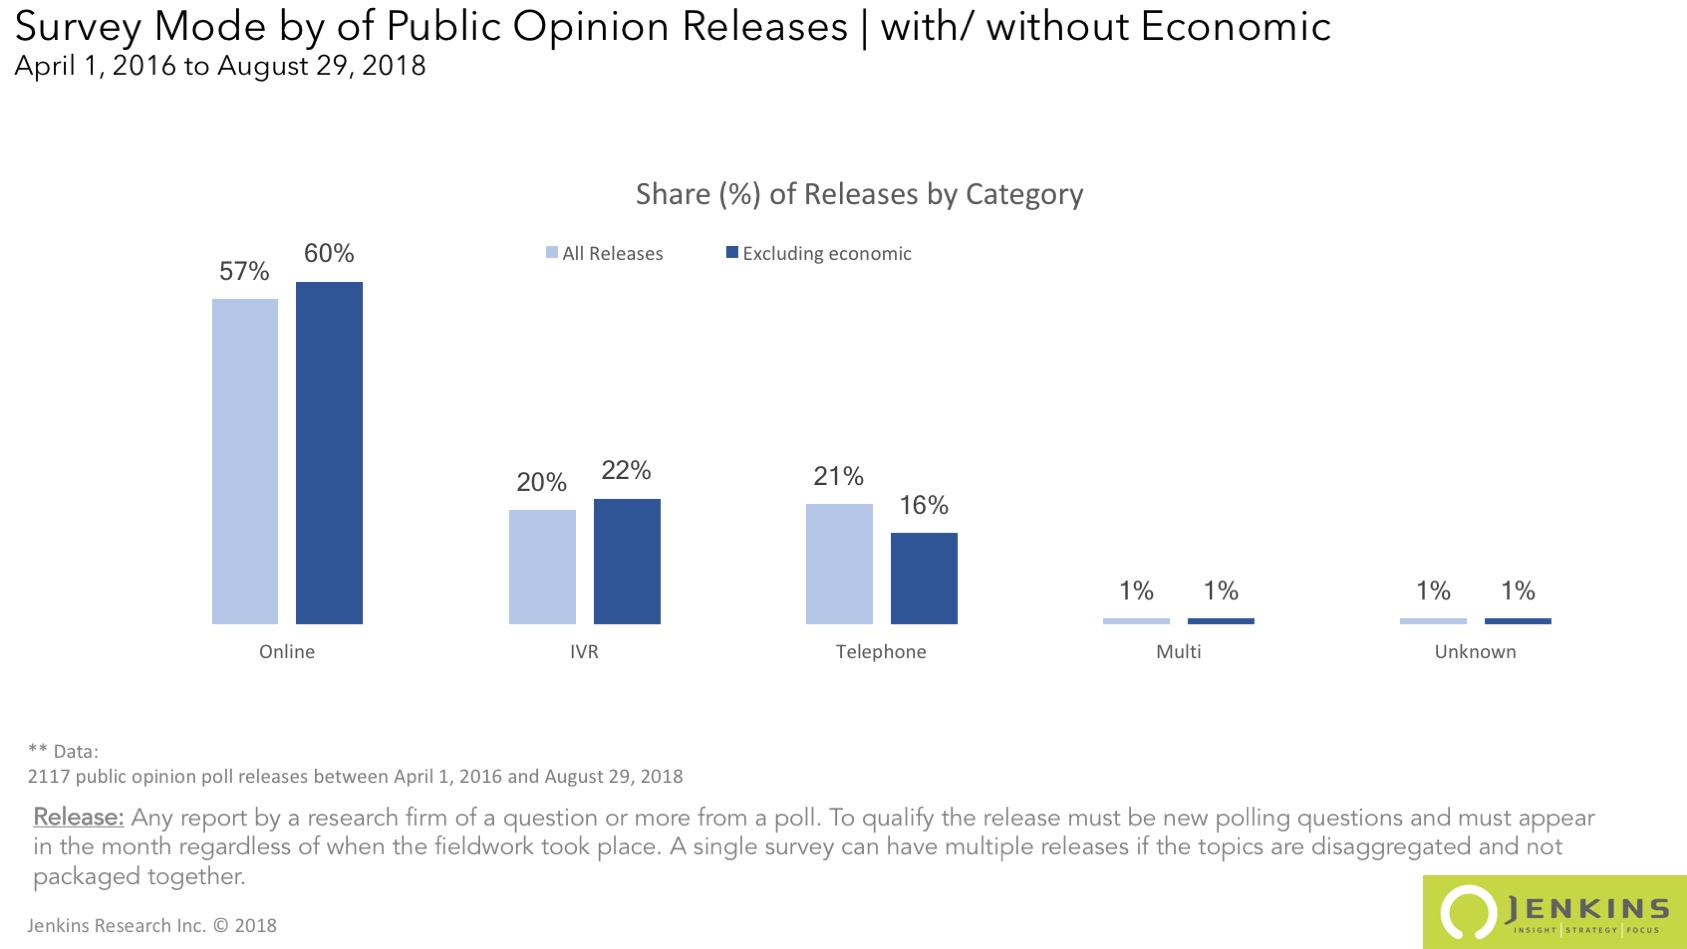 Survey releases by Mode with and without the economy category